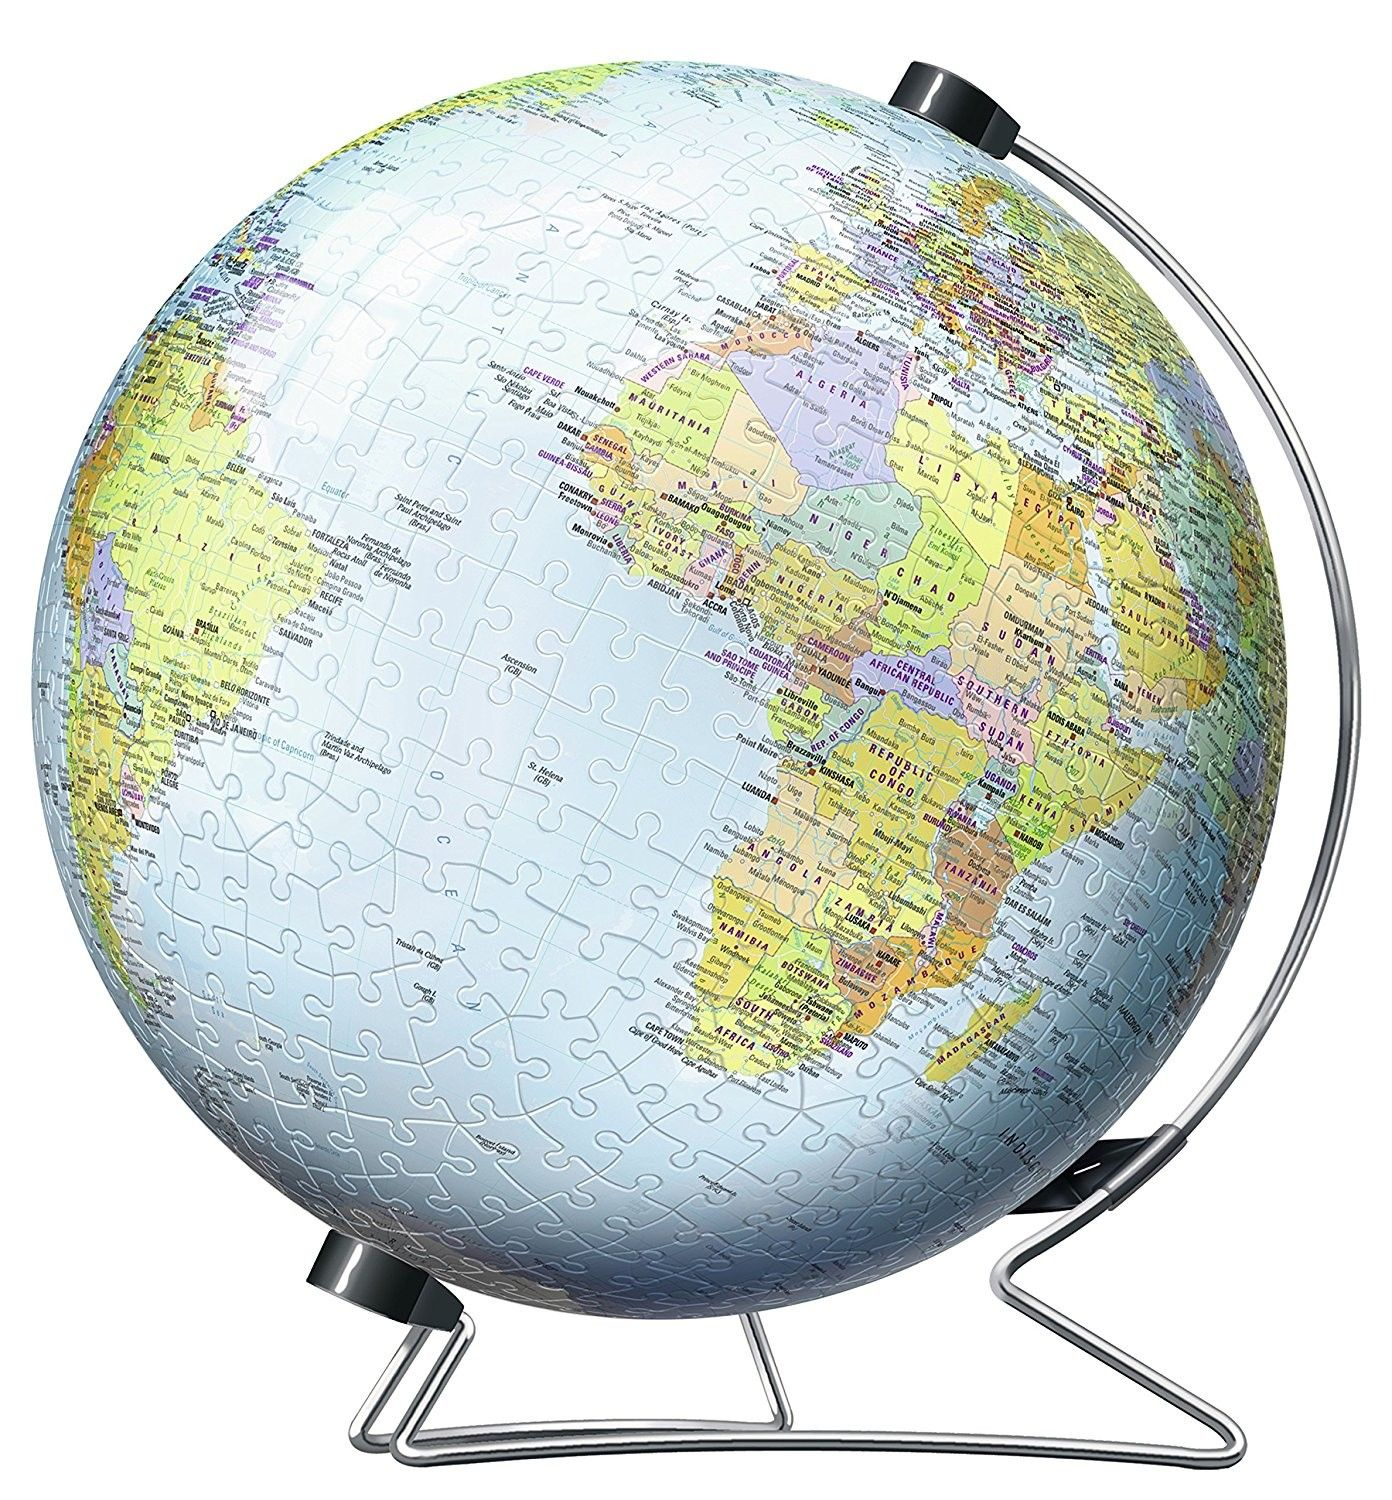 The Earth 540 Pc World Globe 3d Puzzle With Rotation Stand World Map Puzzle Diy Projects To Make And Sell World Globes